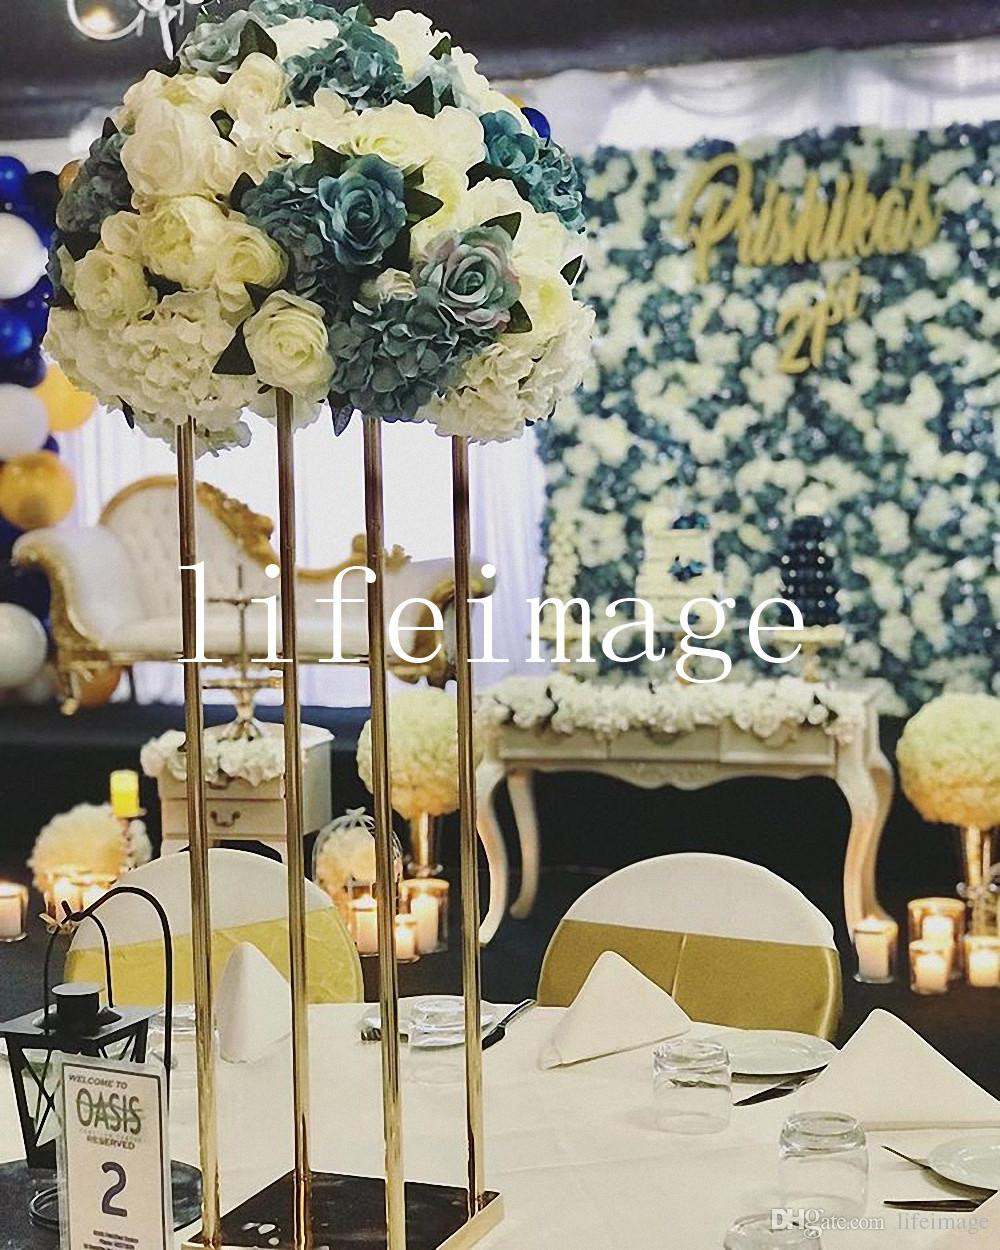 15 Fashionable Tall Wedding Vases for Sale 2021 free download tall wedding vases for sale of newest flower stand 80 cm tall wedding metal crystal table throughout newest flower stand 80 cm tall wedding metal crystal table centerpiece square table flowe